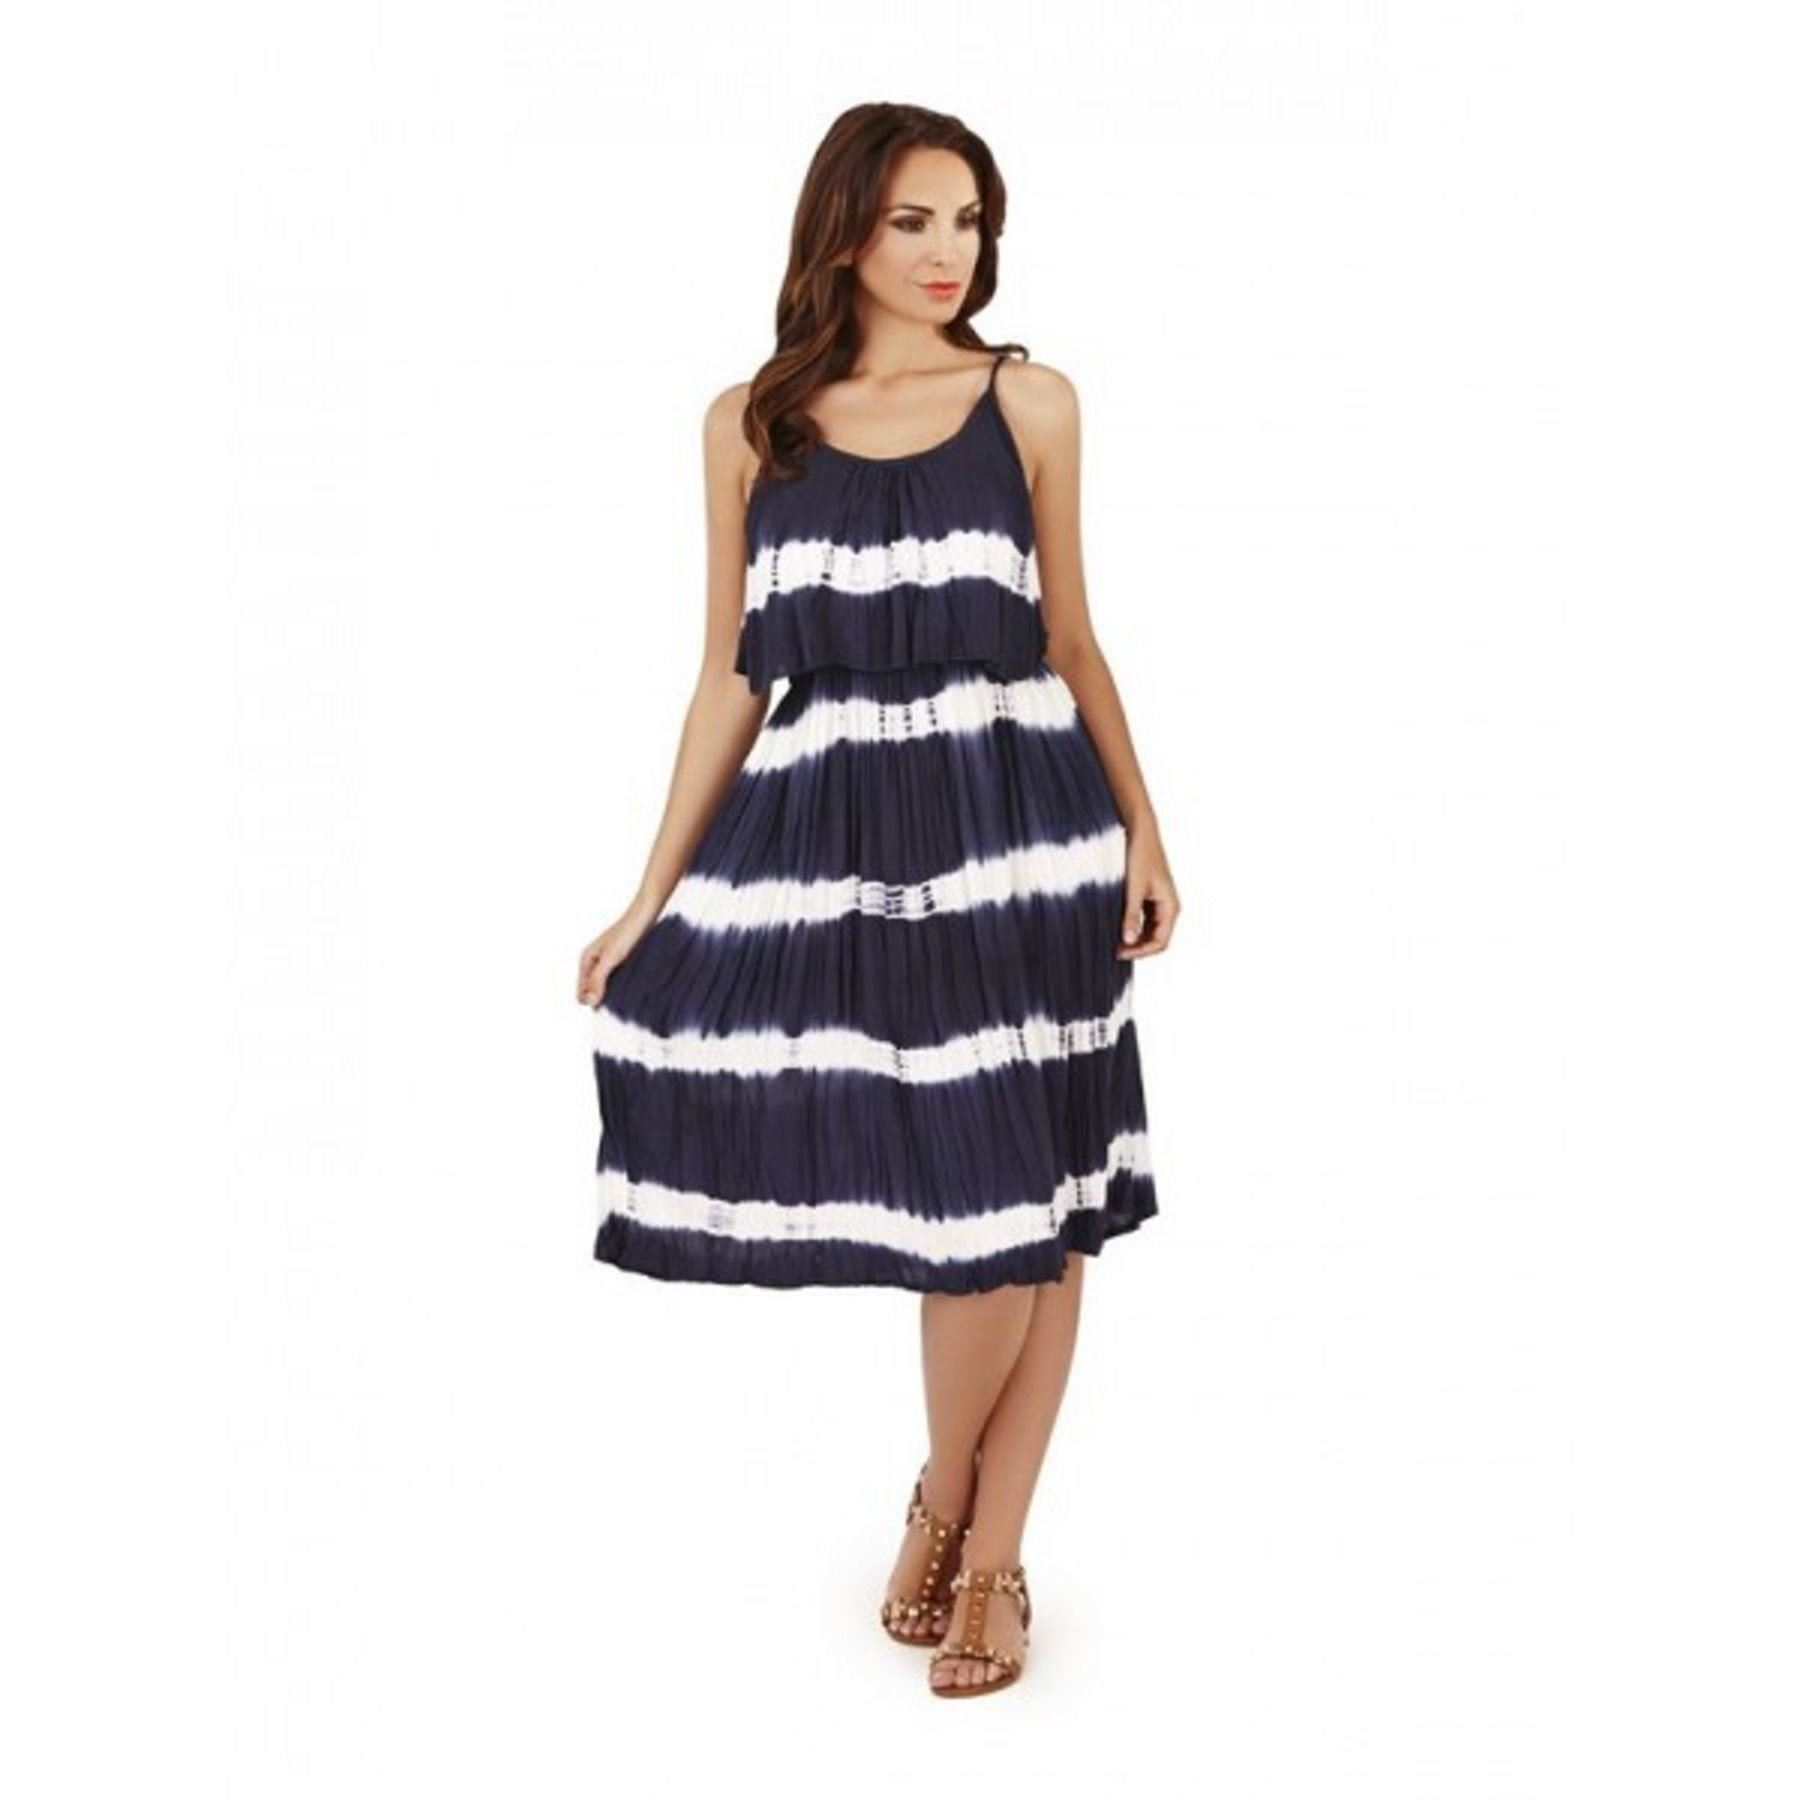 Shop plus size dresses for a great fit at DRESSBAR. Find the latest in fit & flare, maxis, cocktail dresses and more when you shop DRESSBAR. Skip to content Click to open item in quickview mode Click to add item to the favorite list. FREE SHIPPING ON $75 OR MORE FREE GIFT .